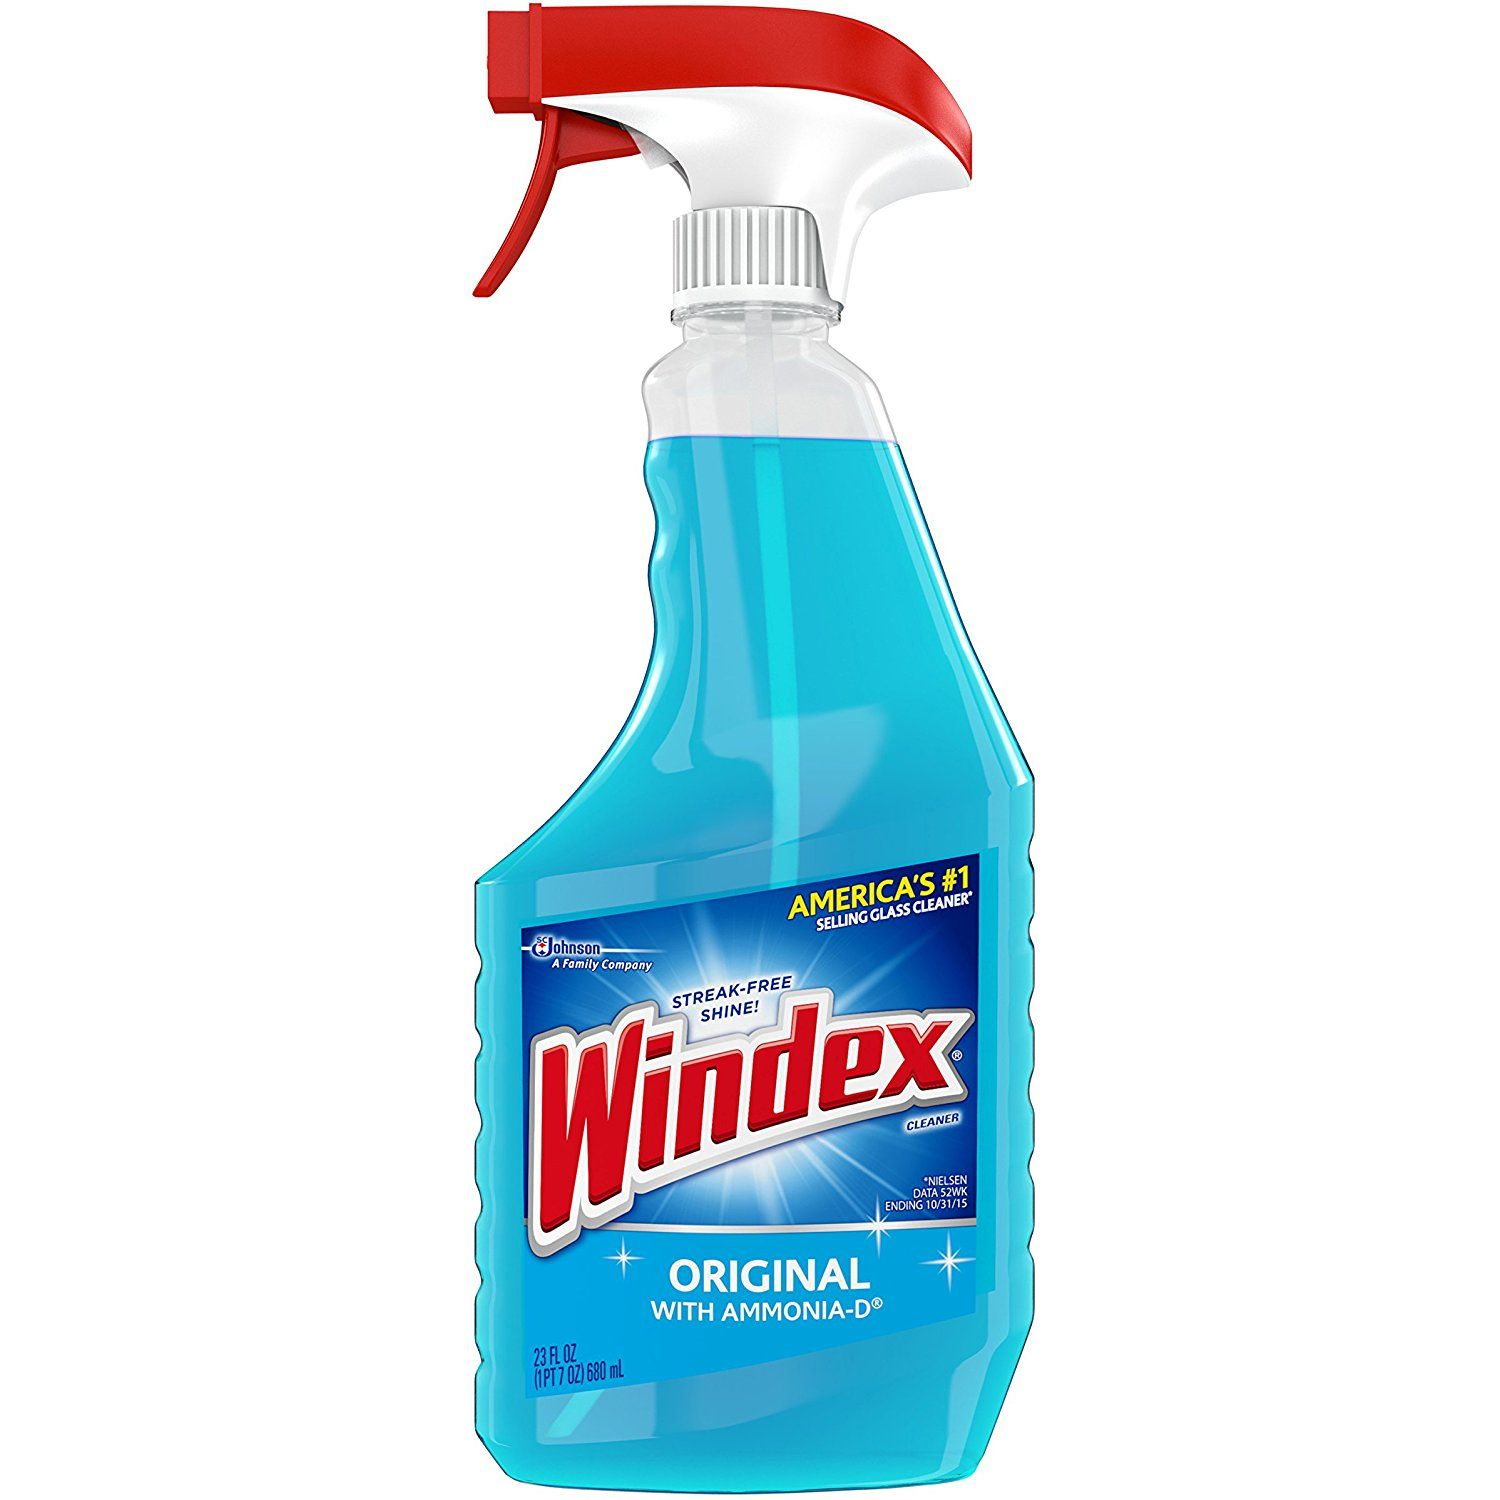 Windex Original Glass Cleaner 23 0 Fluid Ounce Want Additional Info Click On The Image This Is An Affiliate Link Pr Glass Cleaner Cleaning Glass Windex